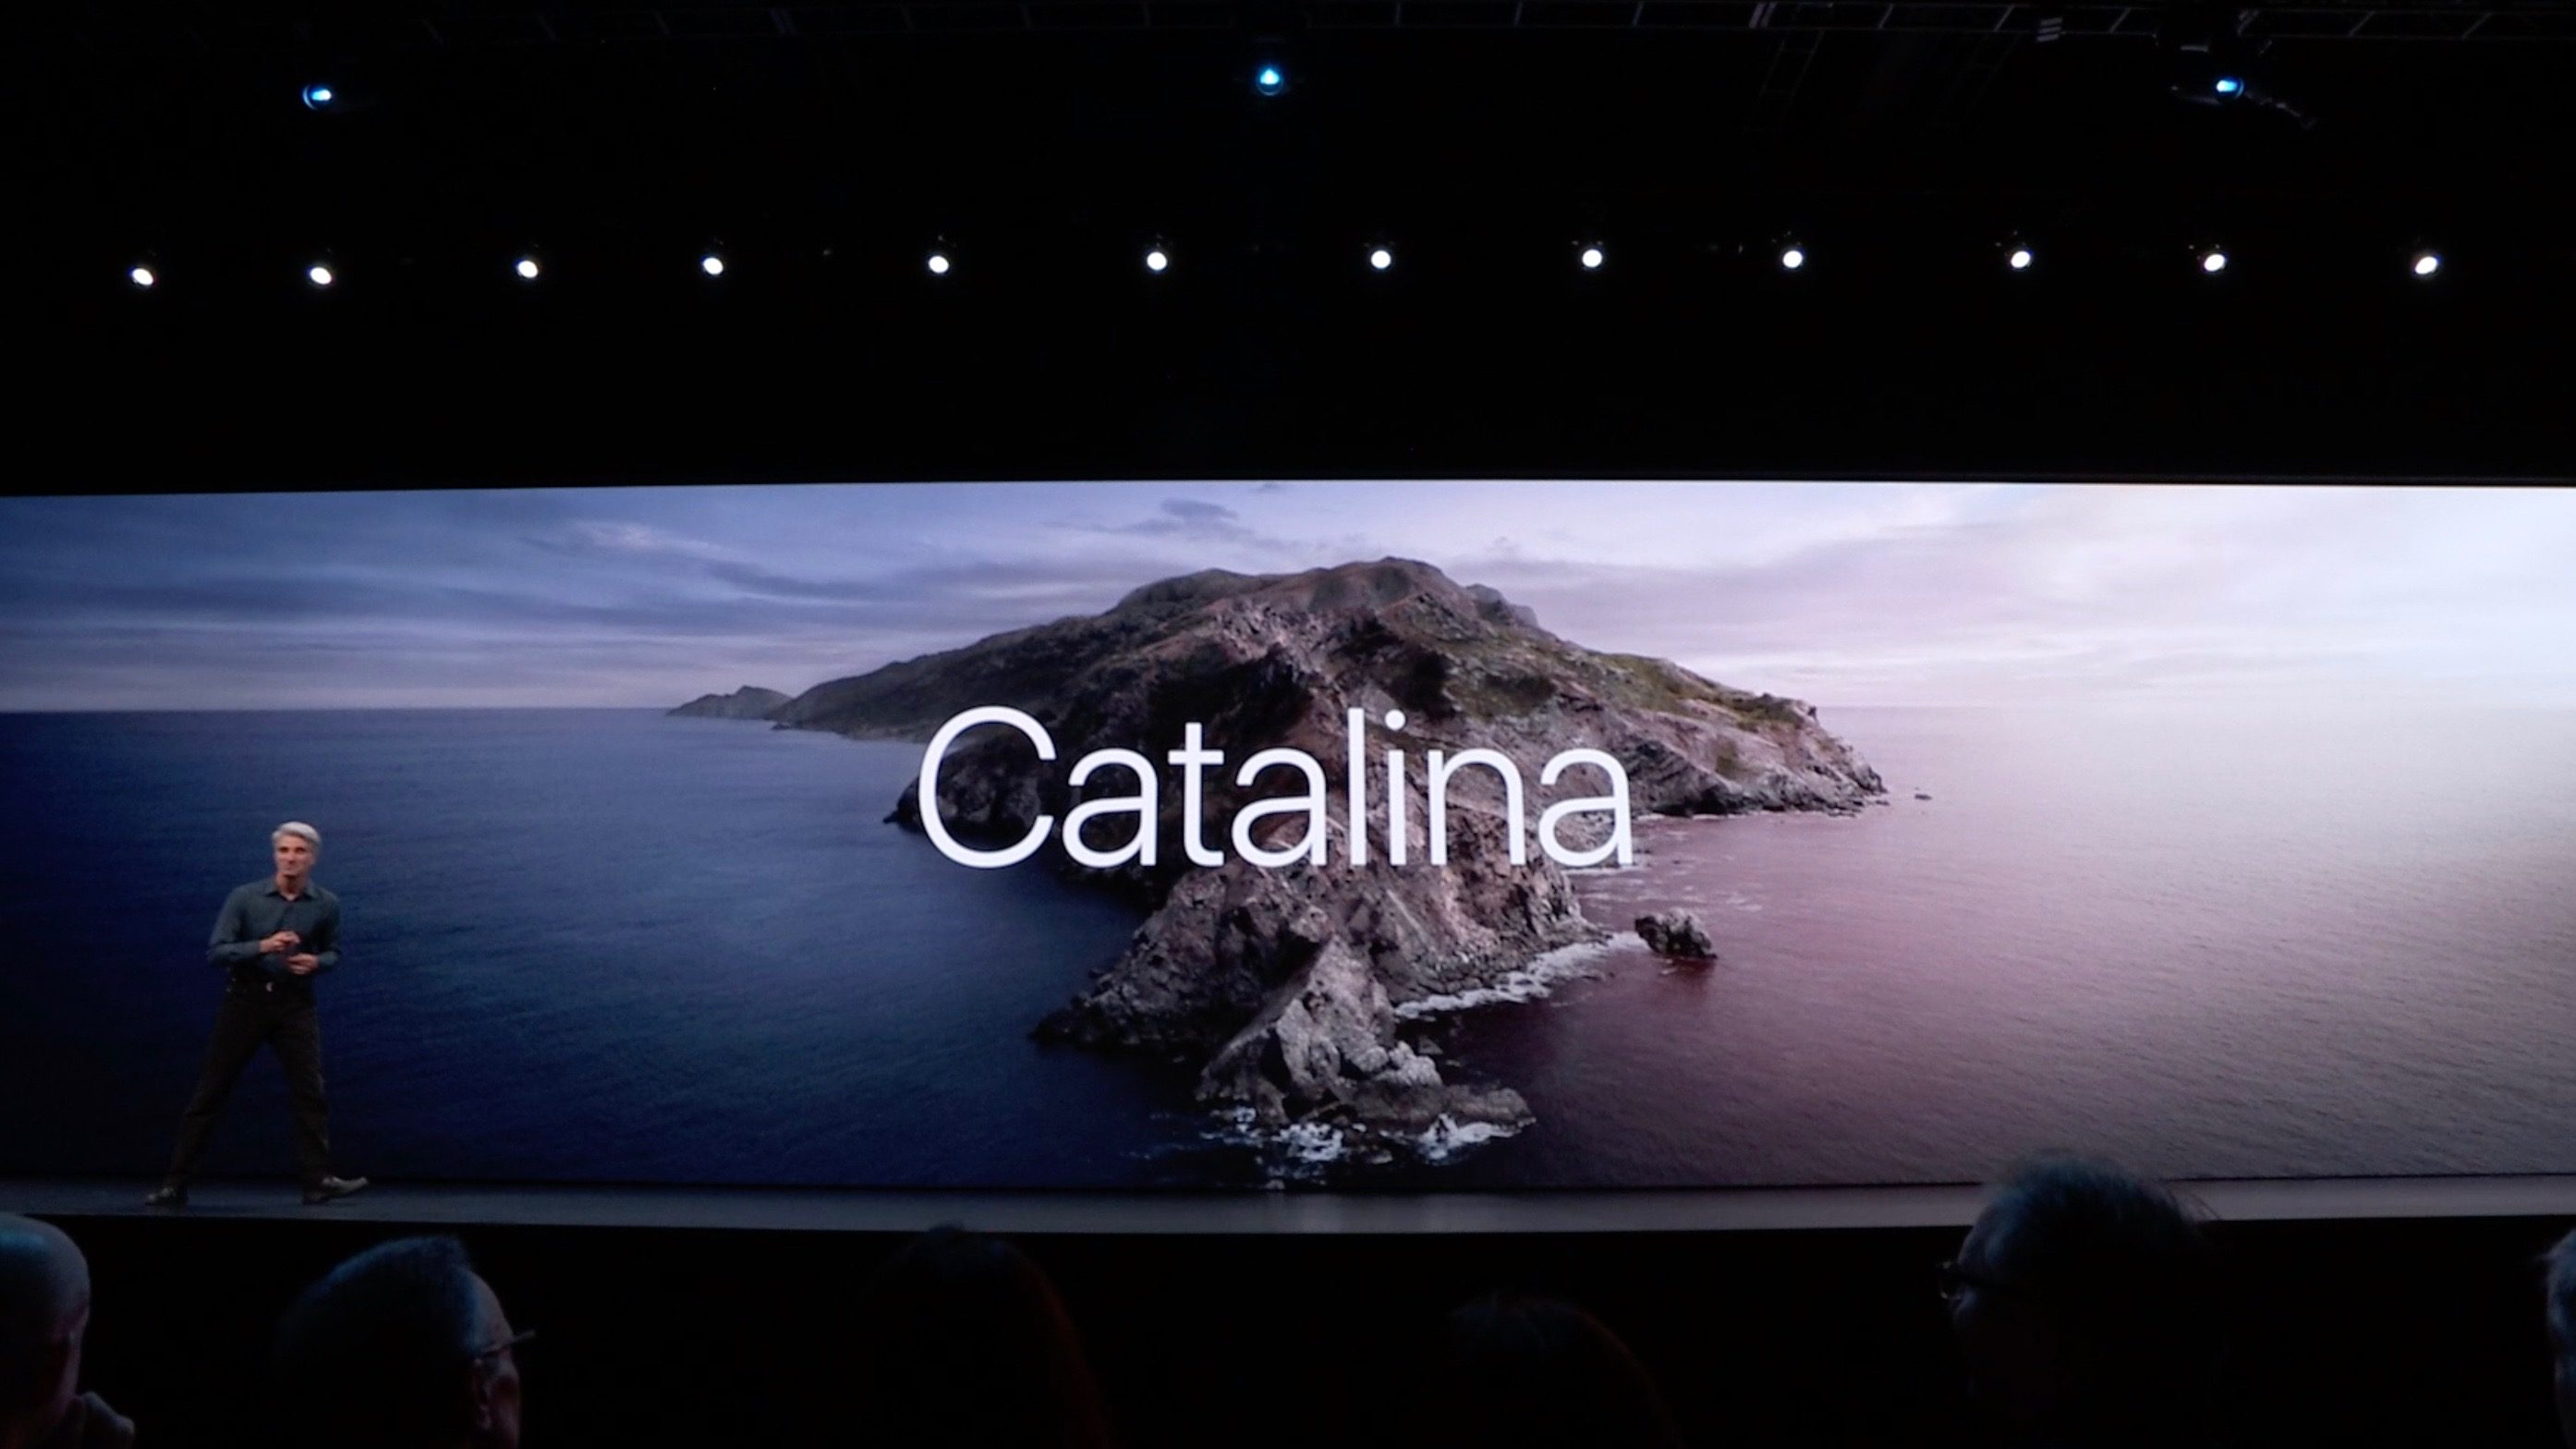 Download the new macOS Catalina wallpaper here   9to5Mac 2788x1568